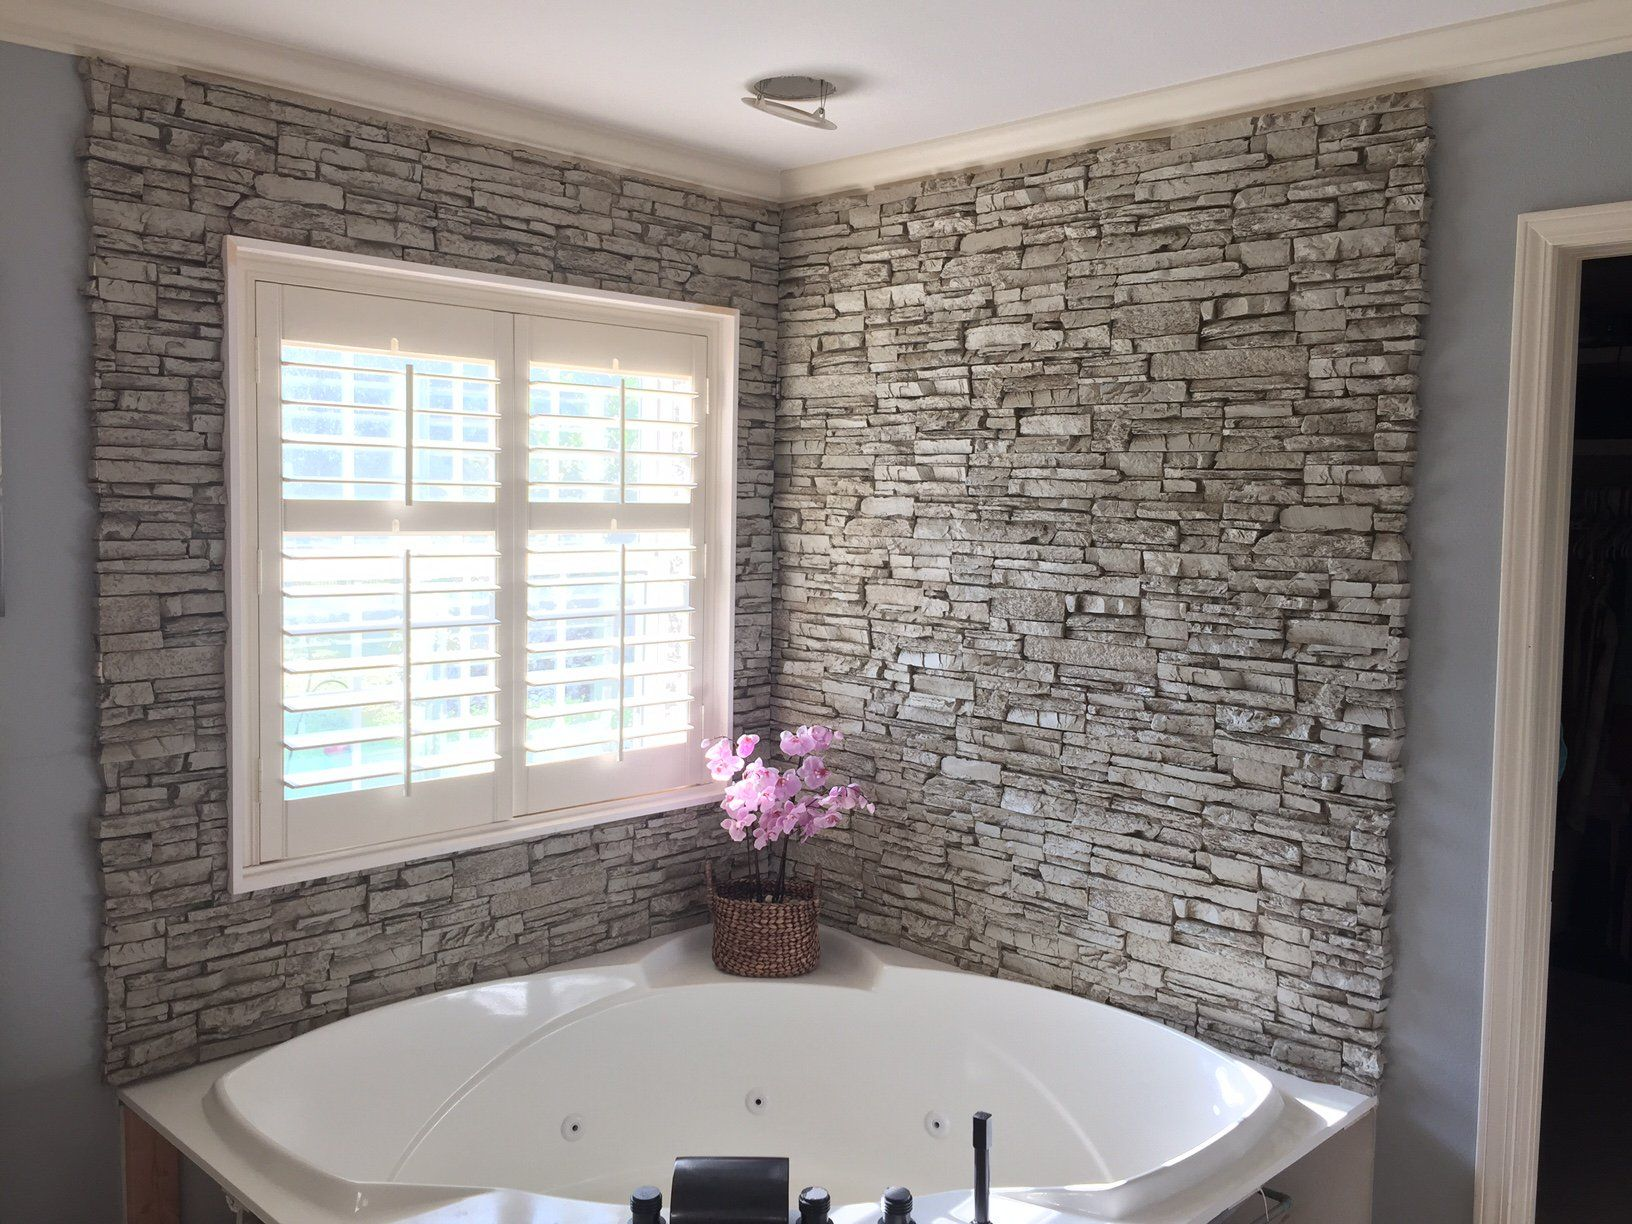 Stunning Corner Bathtub Wall Surround | Pinterest | Bathtub walls ...